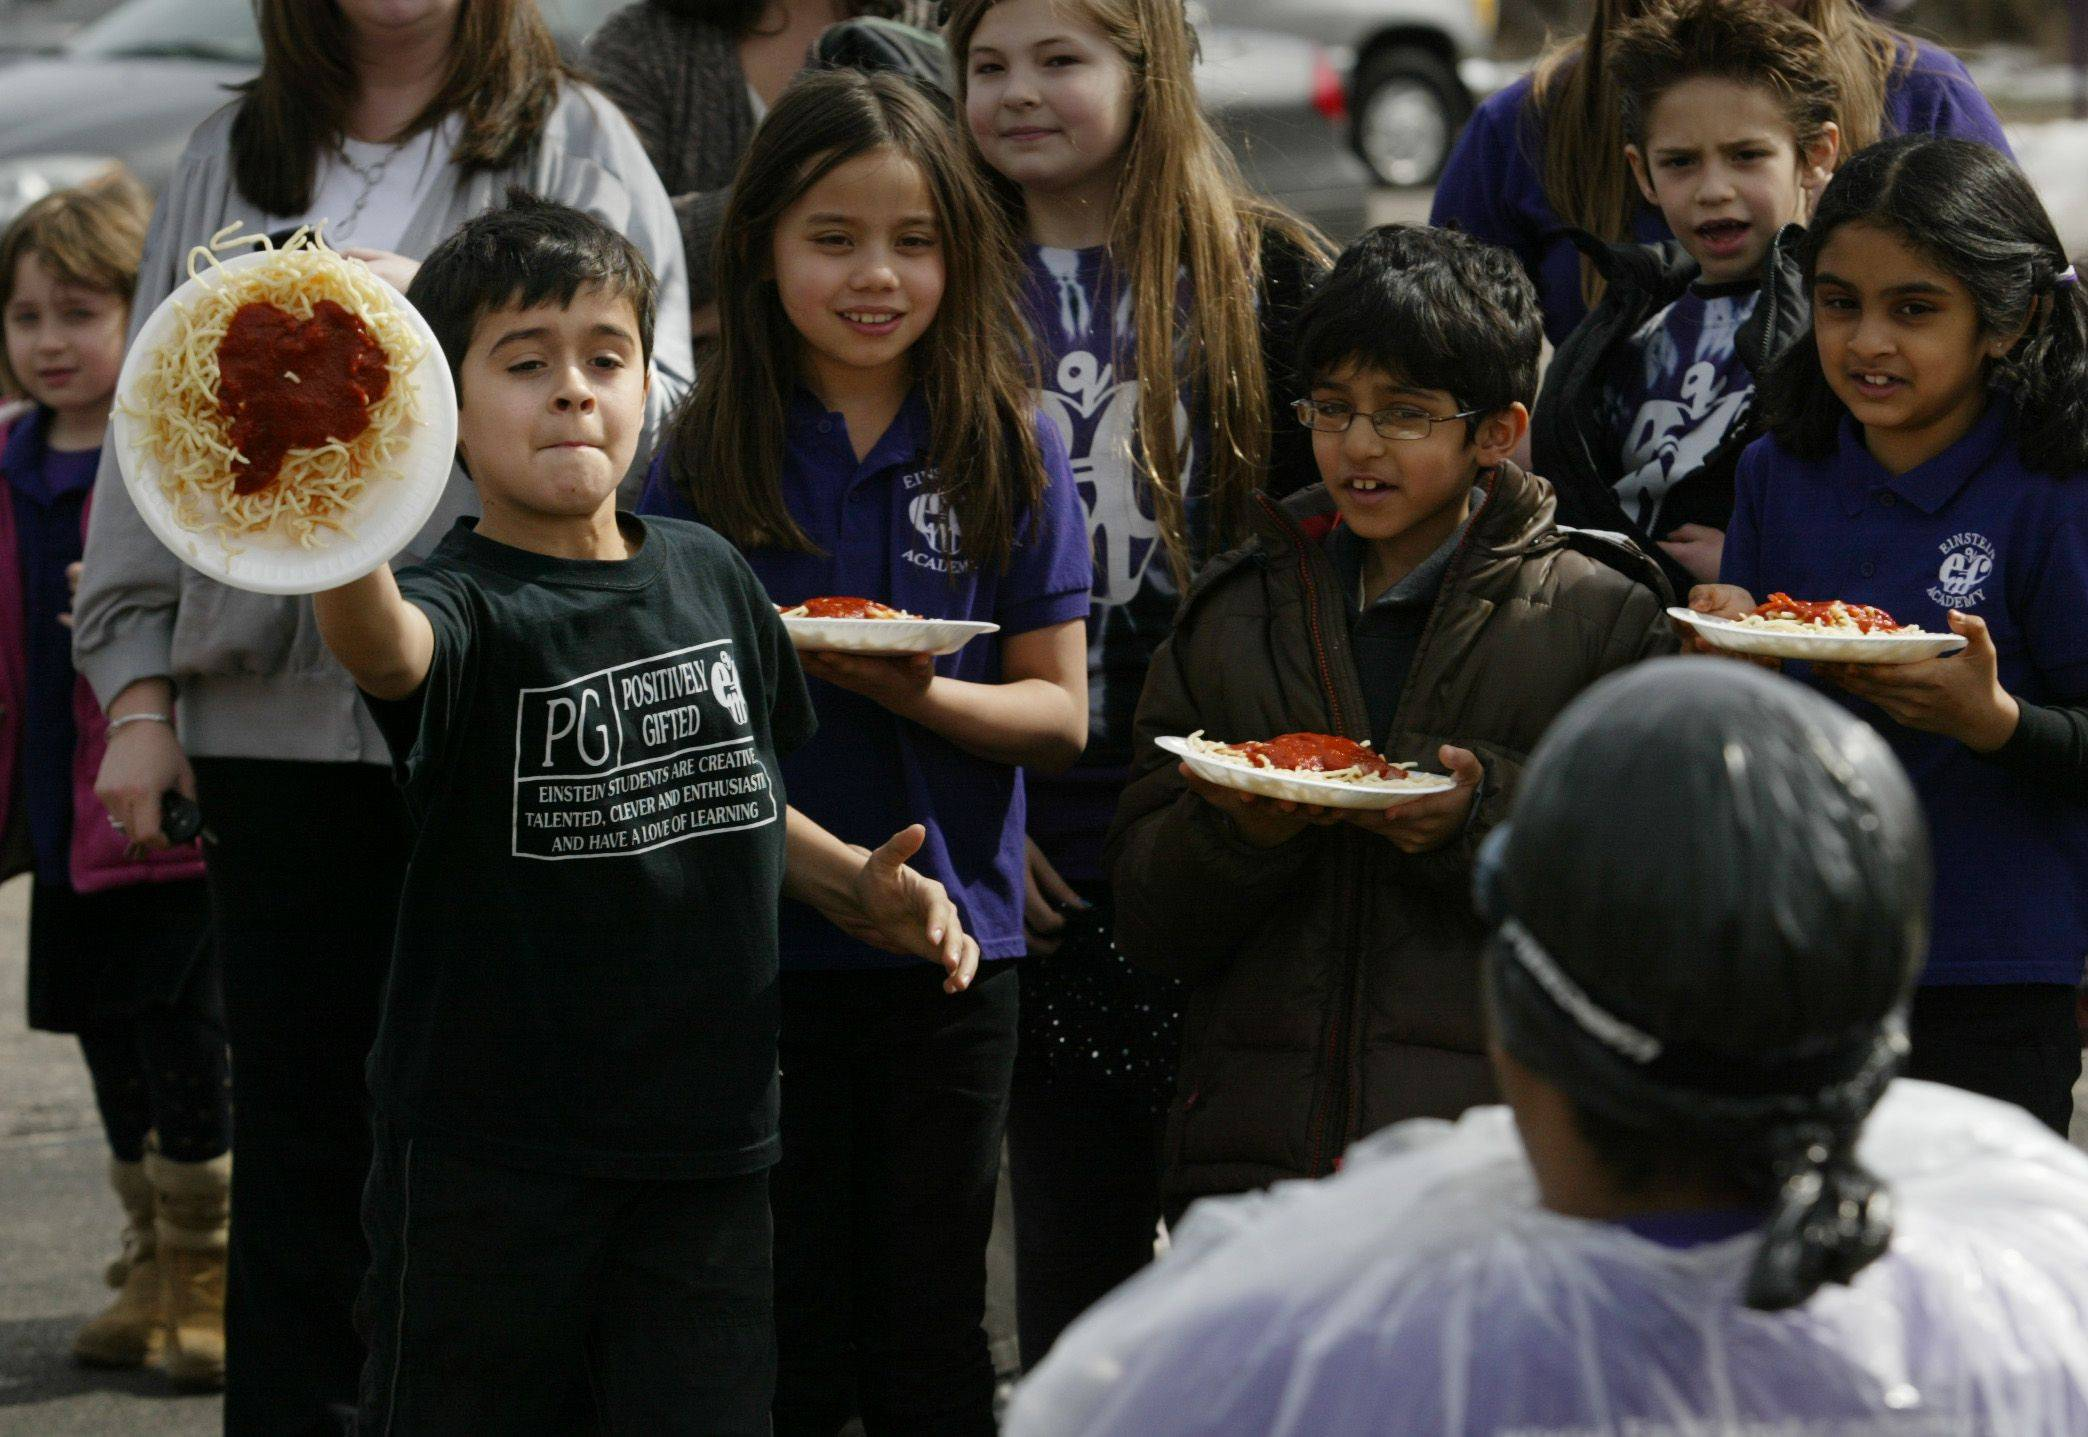 Einstein Academy third grader Brady Iaccino takes the first shot at hitting teacher Jason Smith with a plate full of pasta and marinara sauce Monday in Elgin. The pasta pie tossing was in honor of Pi, a mathematical constant whose value is the ratio of any circle's circumference to its diameter. The number is usually shortened to 3.14, thus the reason for celebrating it on 03/14.